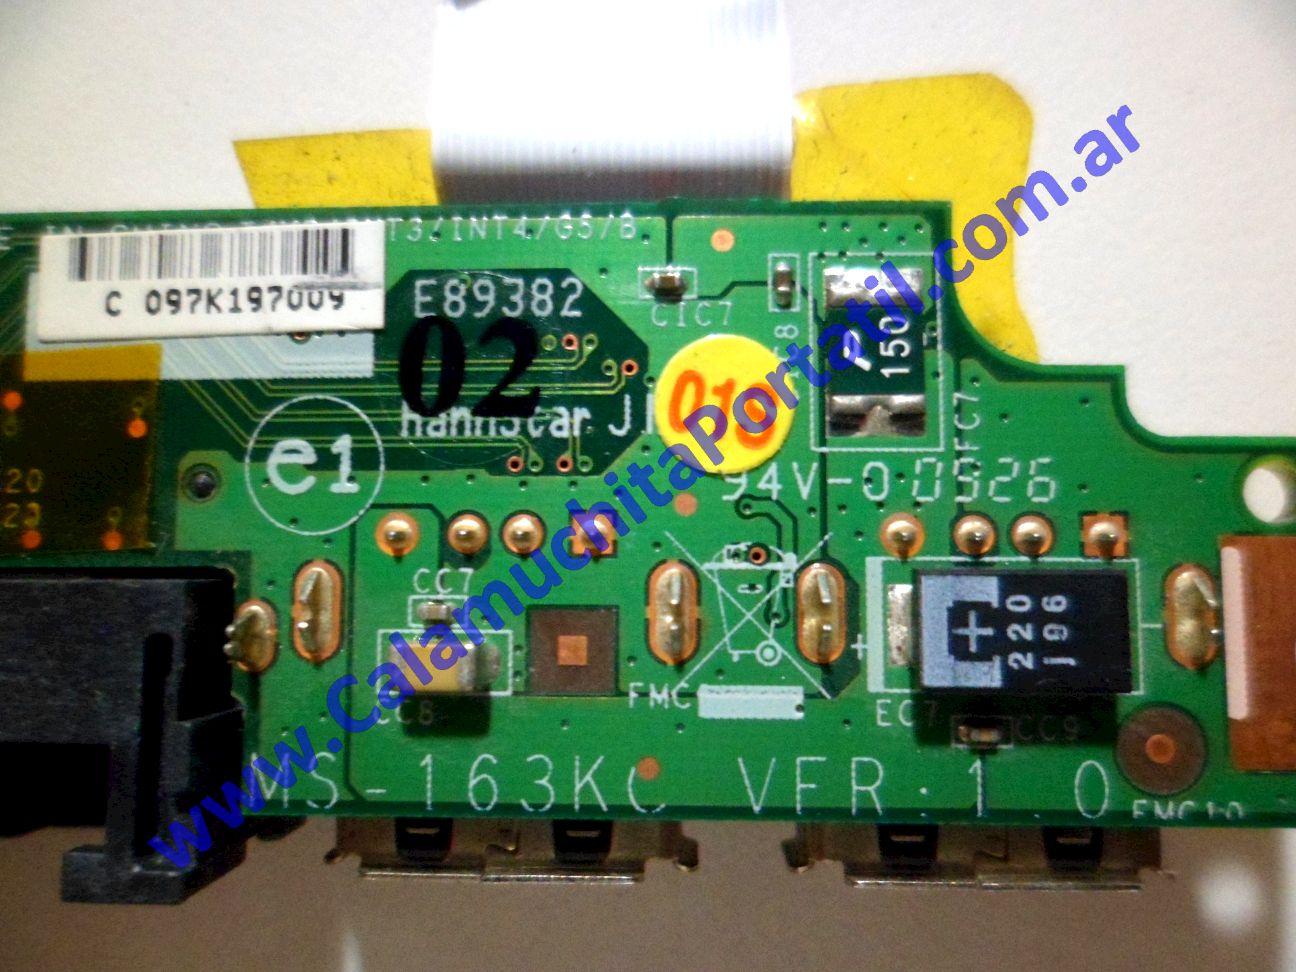 0042PUS Placa USB MSI VR603X / MS-163K